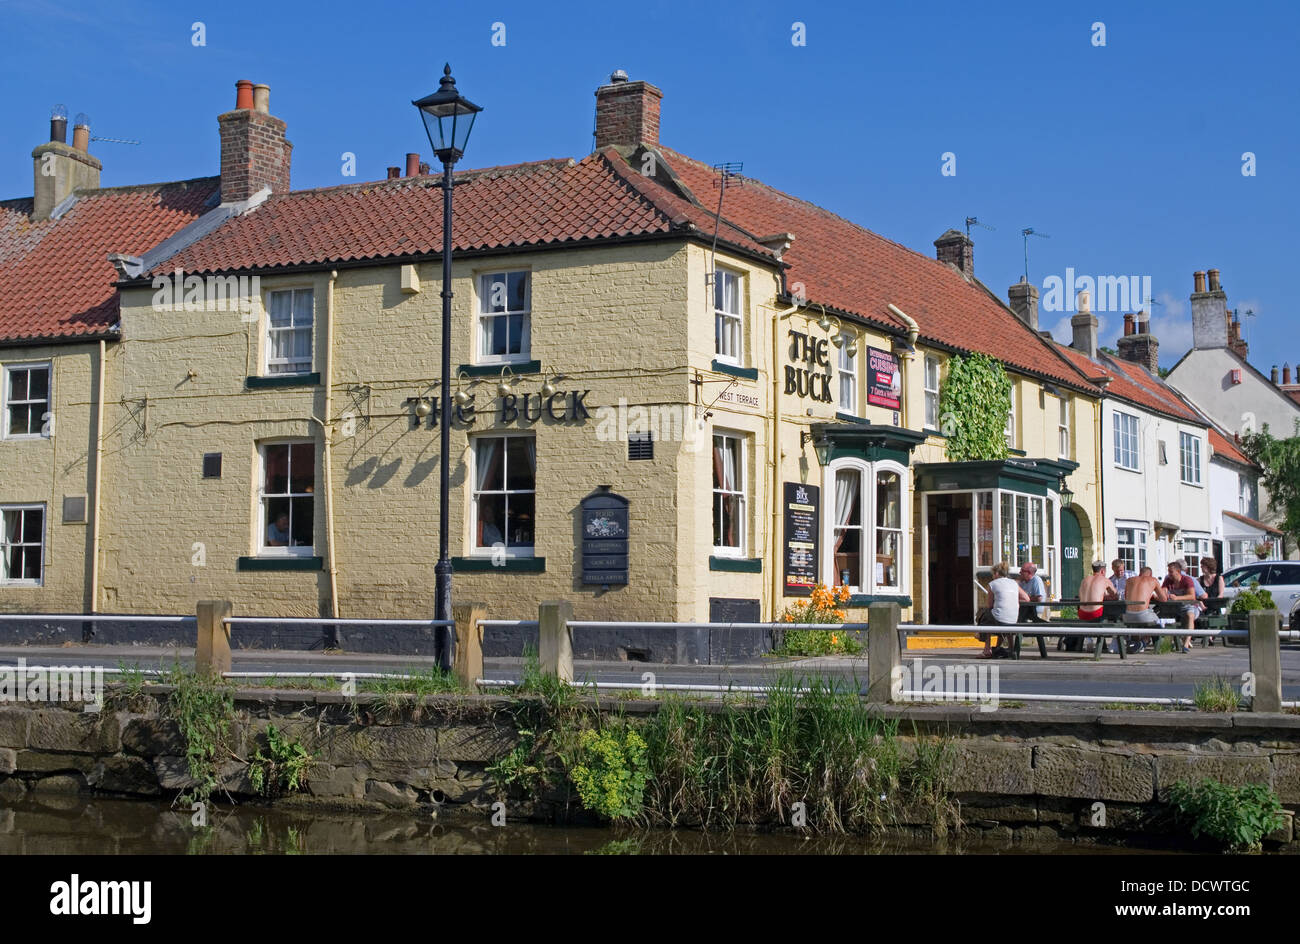 The Buck Inn, Great Ayton, by the River Leven, hot summer afternoon, people sitting outside, North Yorkshire England - Stock Image